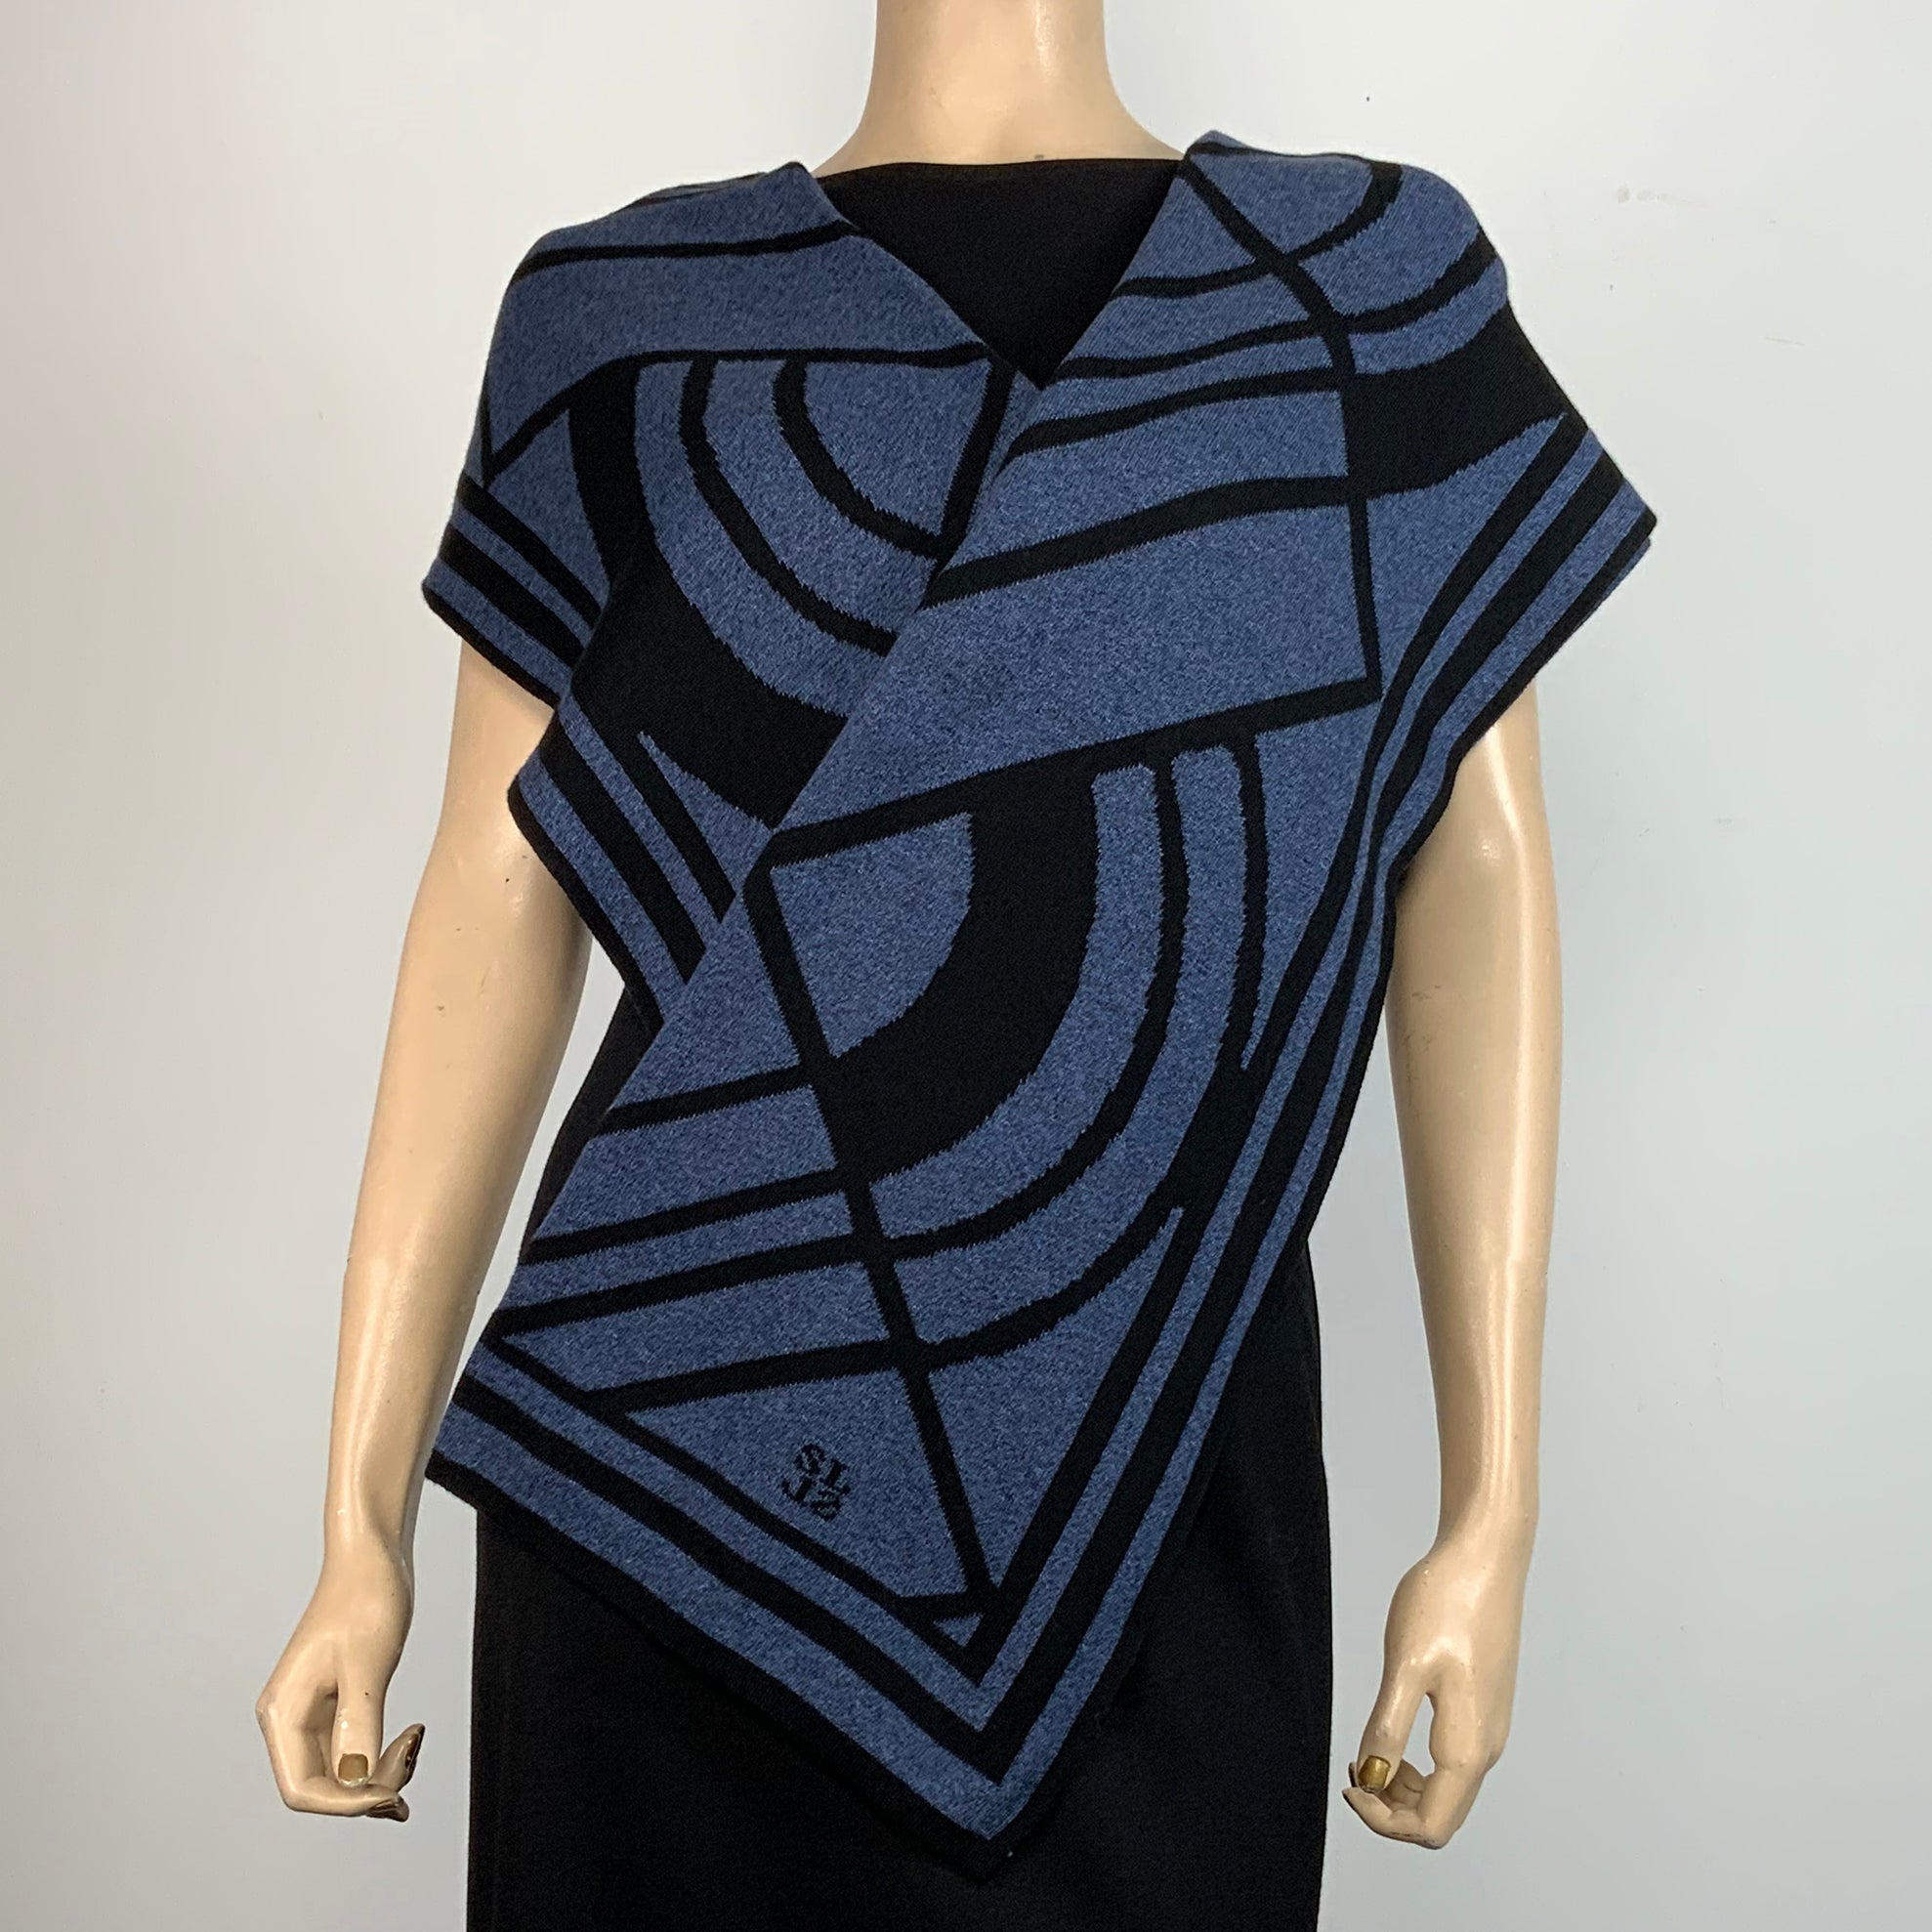 Deco Denim and Black Shawl Scarve Wrap